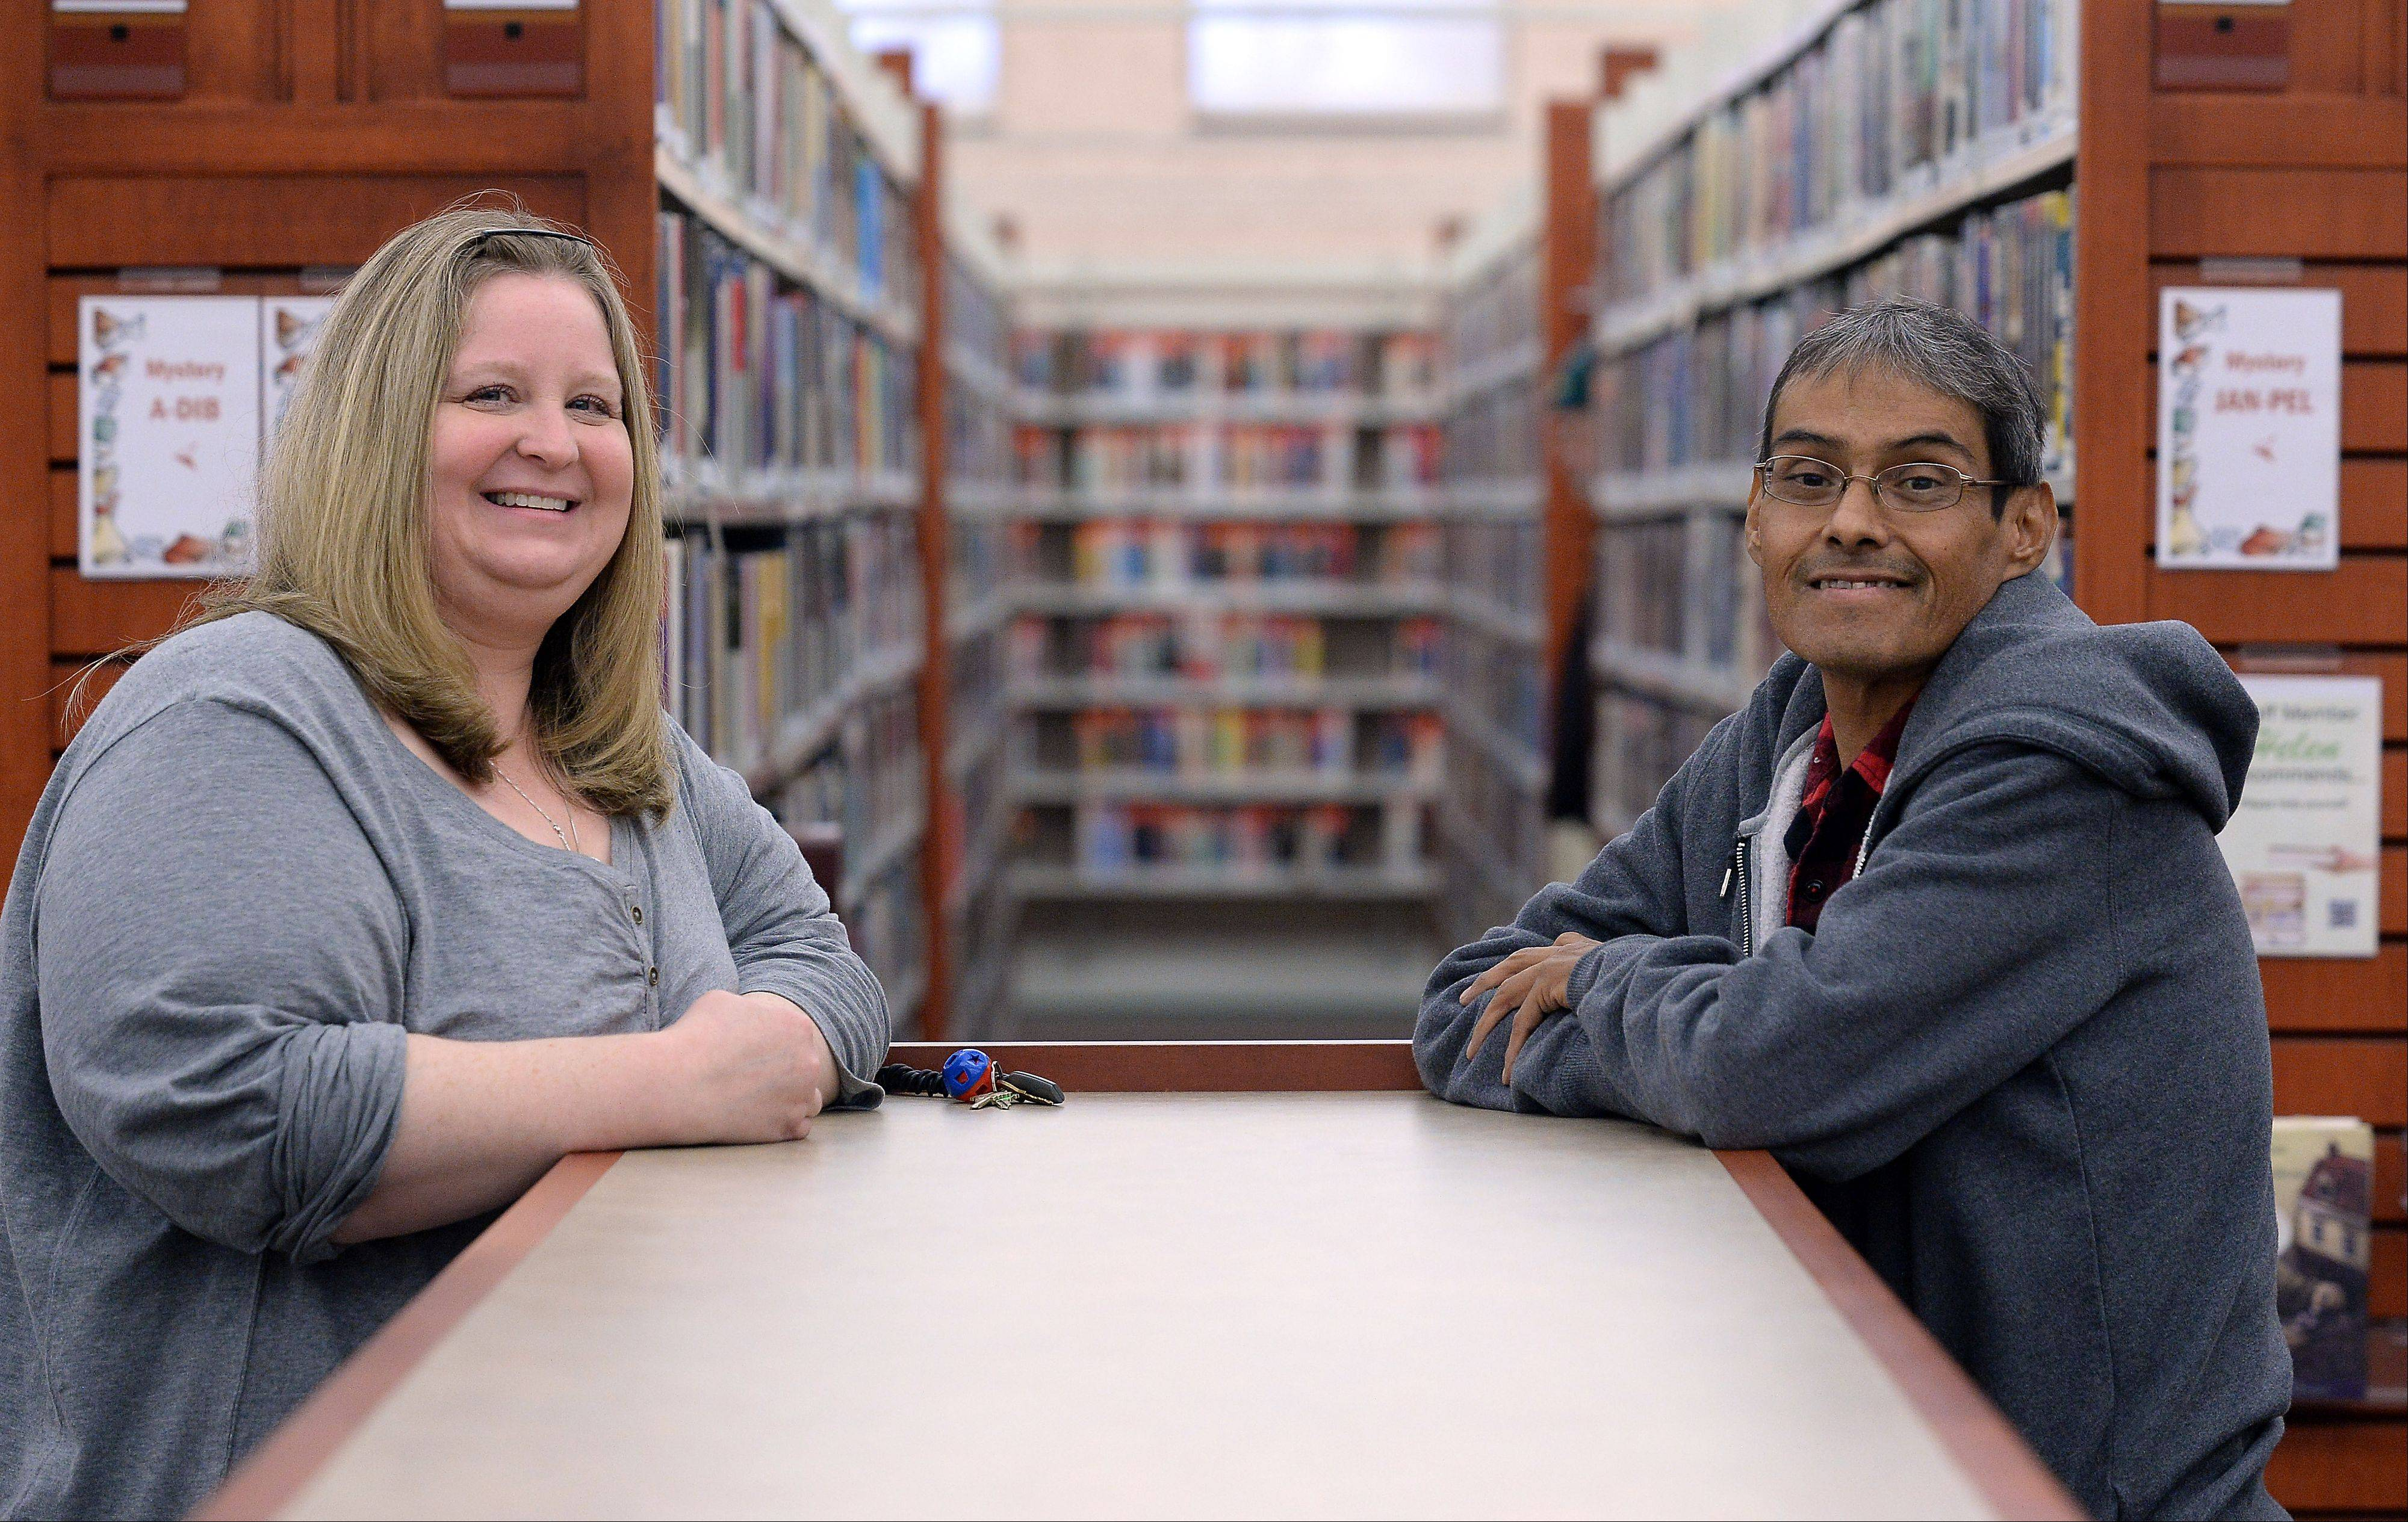 Cindy Barger, serials supervisor at the Schaumburg Township District Library, shares a smile with friend and co-worker Freddie Martinez as they talk about his recent liver transplant. Barger helped Martinez through his difficult times both at home and in the hospital.